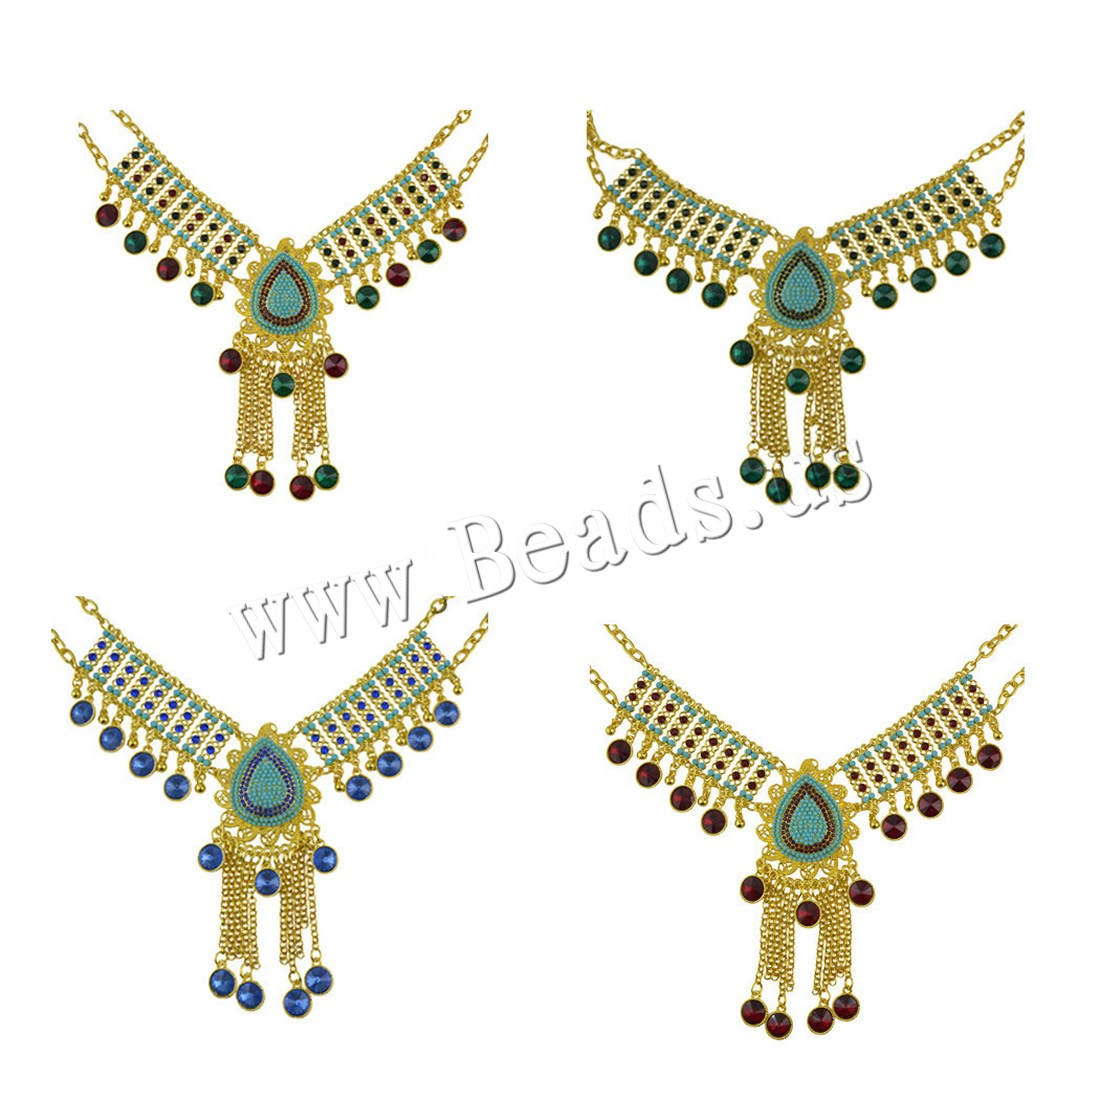 Buy Fashion Statement Necklace Zinc Alloy Crystal & Resin 1.9lnch extender chain gold color plated oval chain & woman colors choice nickel lead & cadmium free 120mm Sold Per Approx 17.3 Inch Strand